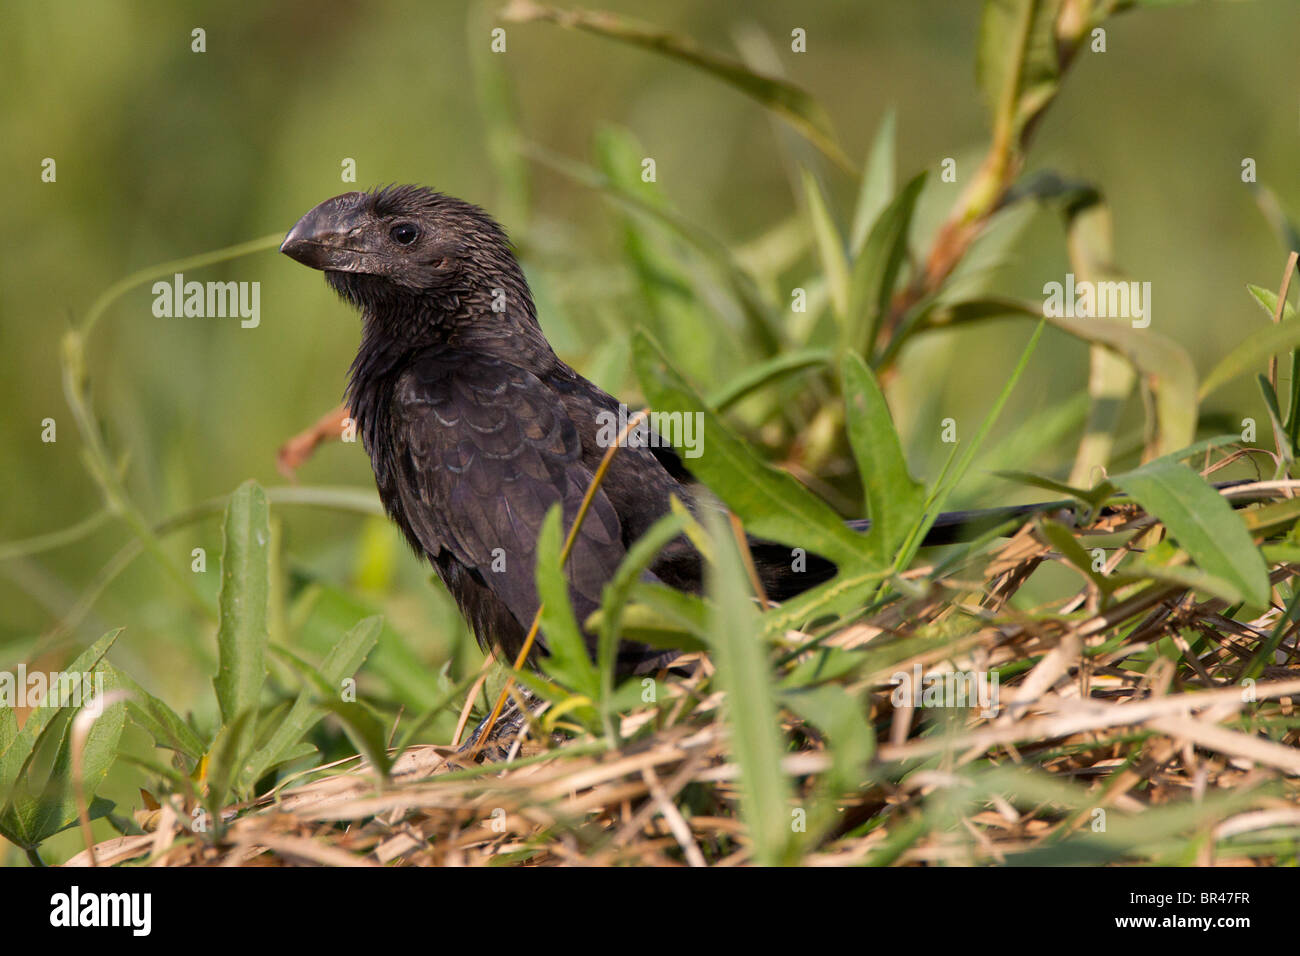 Smooth billed Ani bird sitting in green grass in the Brazil Pantanal - Stock Image